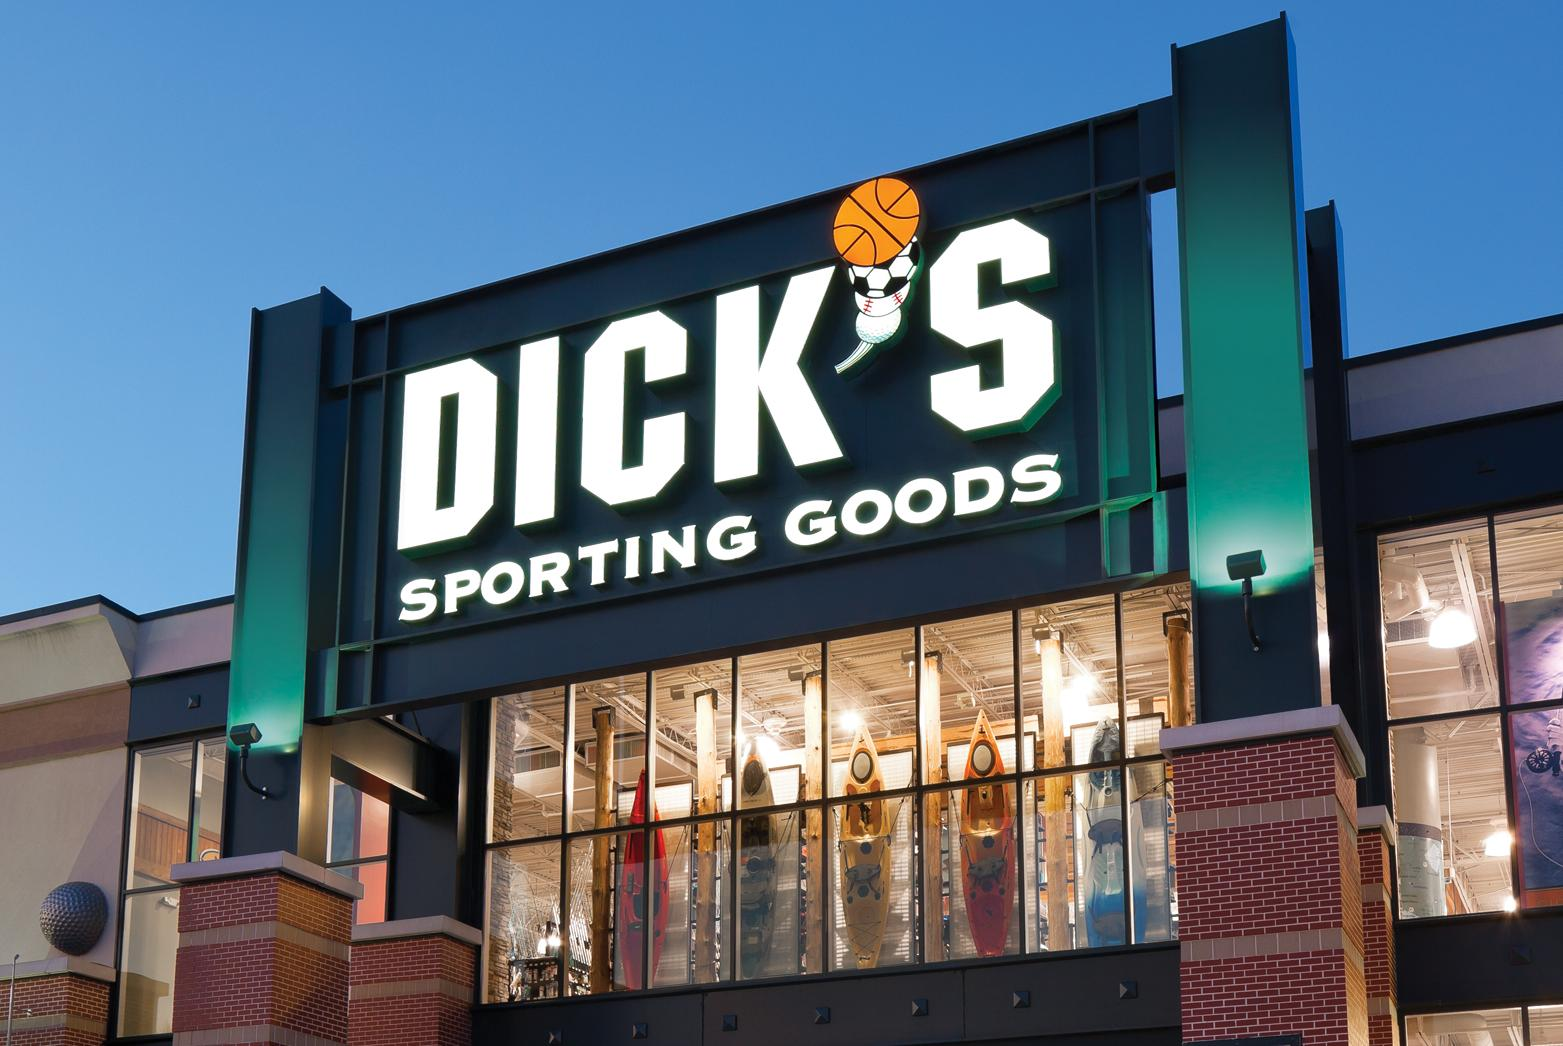 spriting goods Dicks